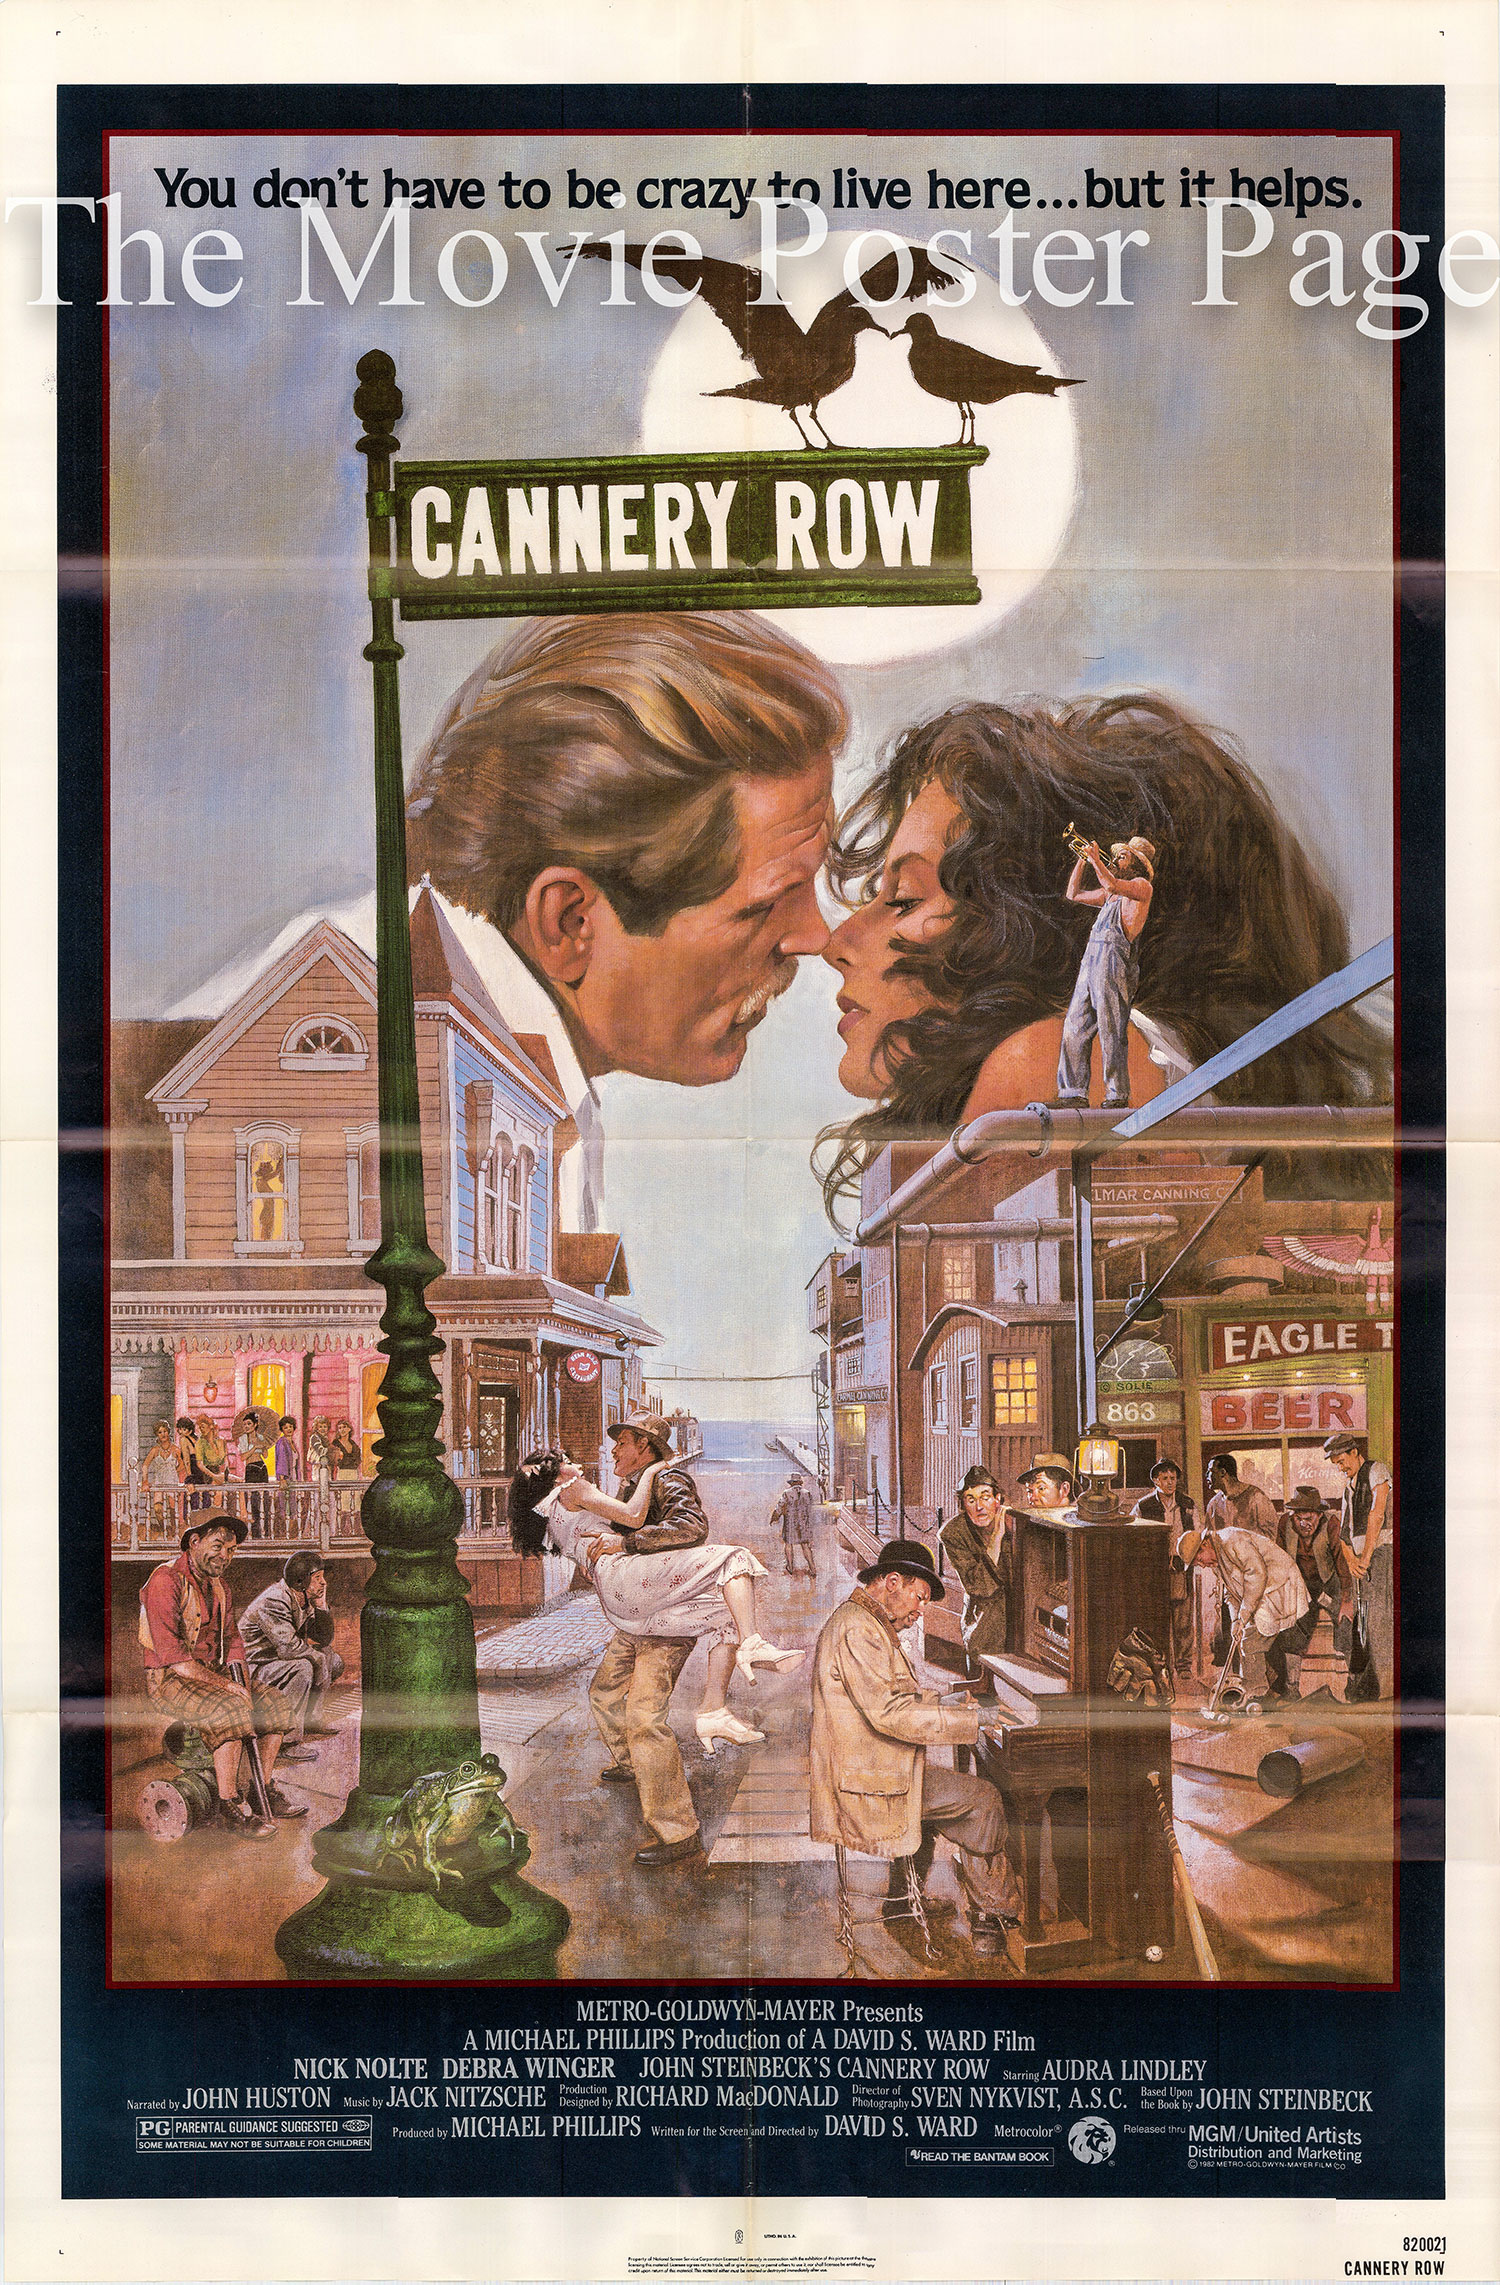 Pictured is a US one-sheet poster for the 1982 David S. Ward film Cannery Row starring Nick Nolte.